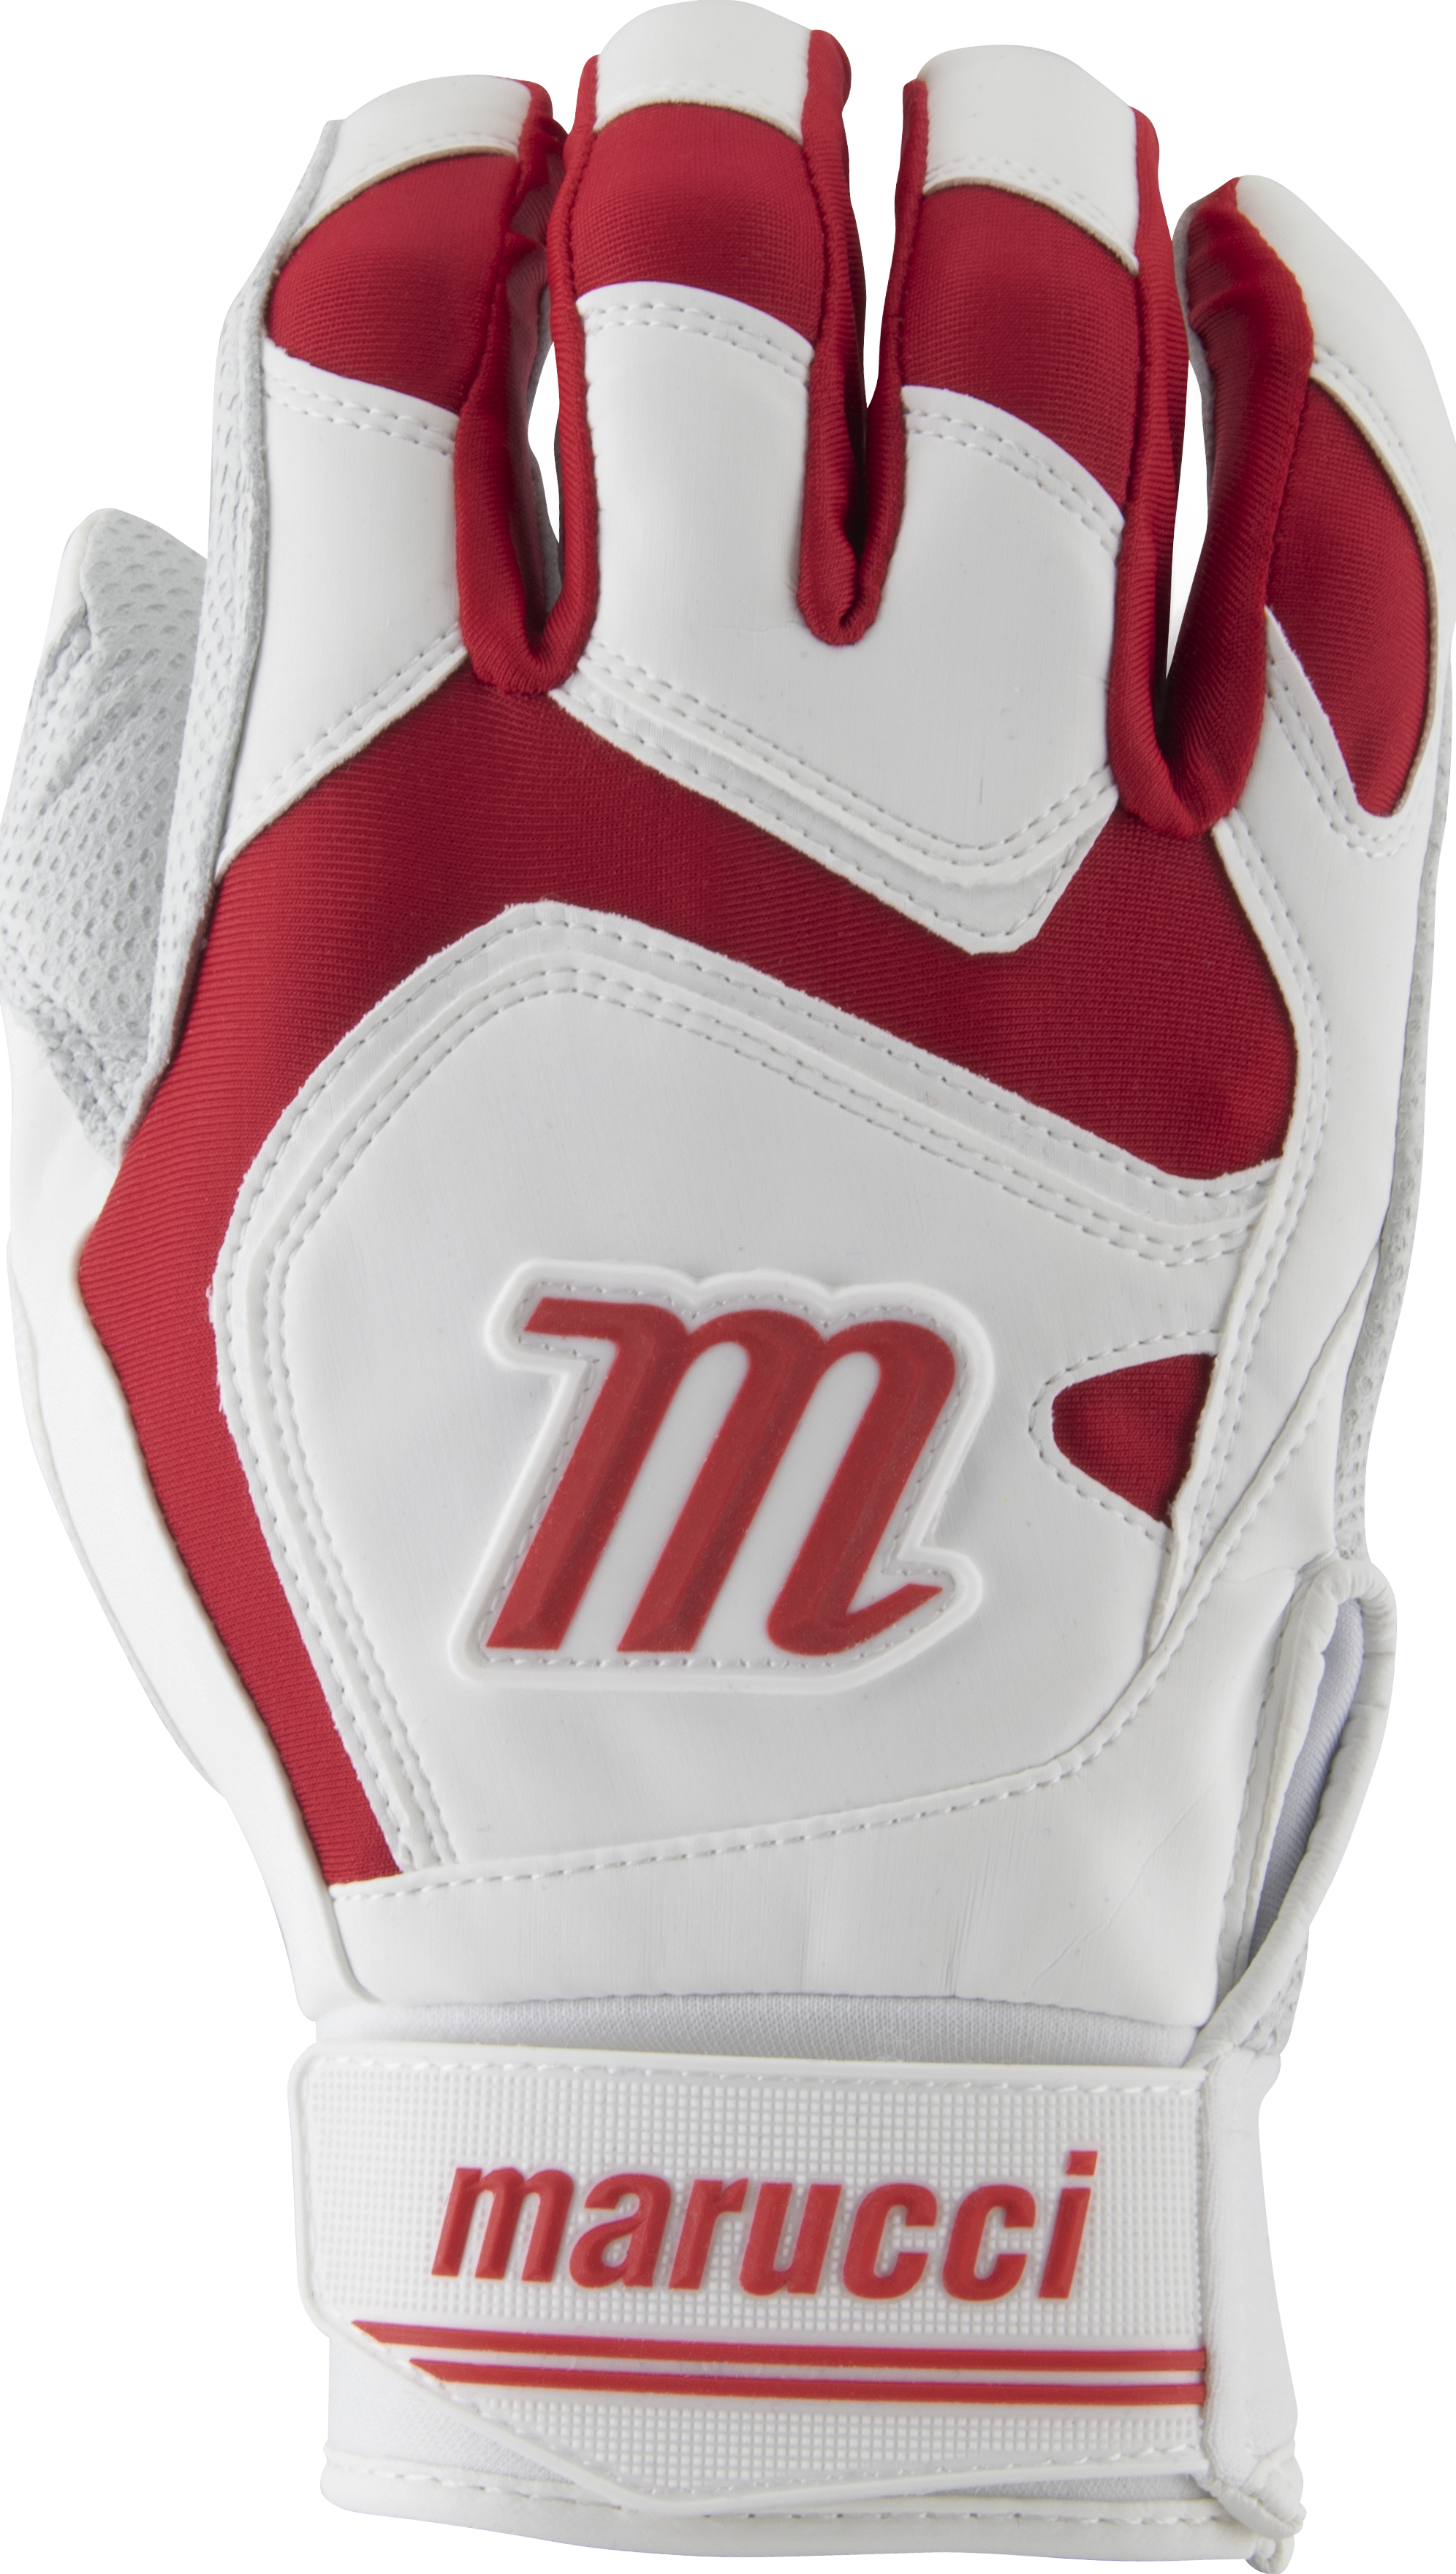 marucci-signature-batting-gloves-mbgsgn2-1-pair-white-red-adult-medium MBGSGN2-WR-AM Marucci 849817096697 2019 Model MBGSGN2 Consistency And Craftsmanship Commitment To Quality And Understanding